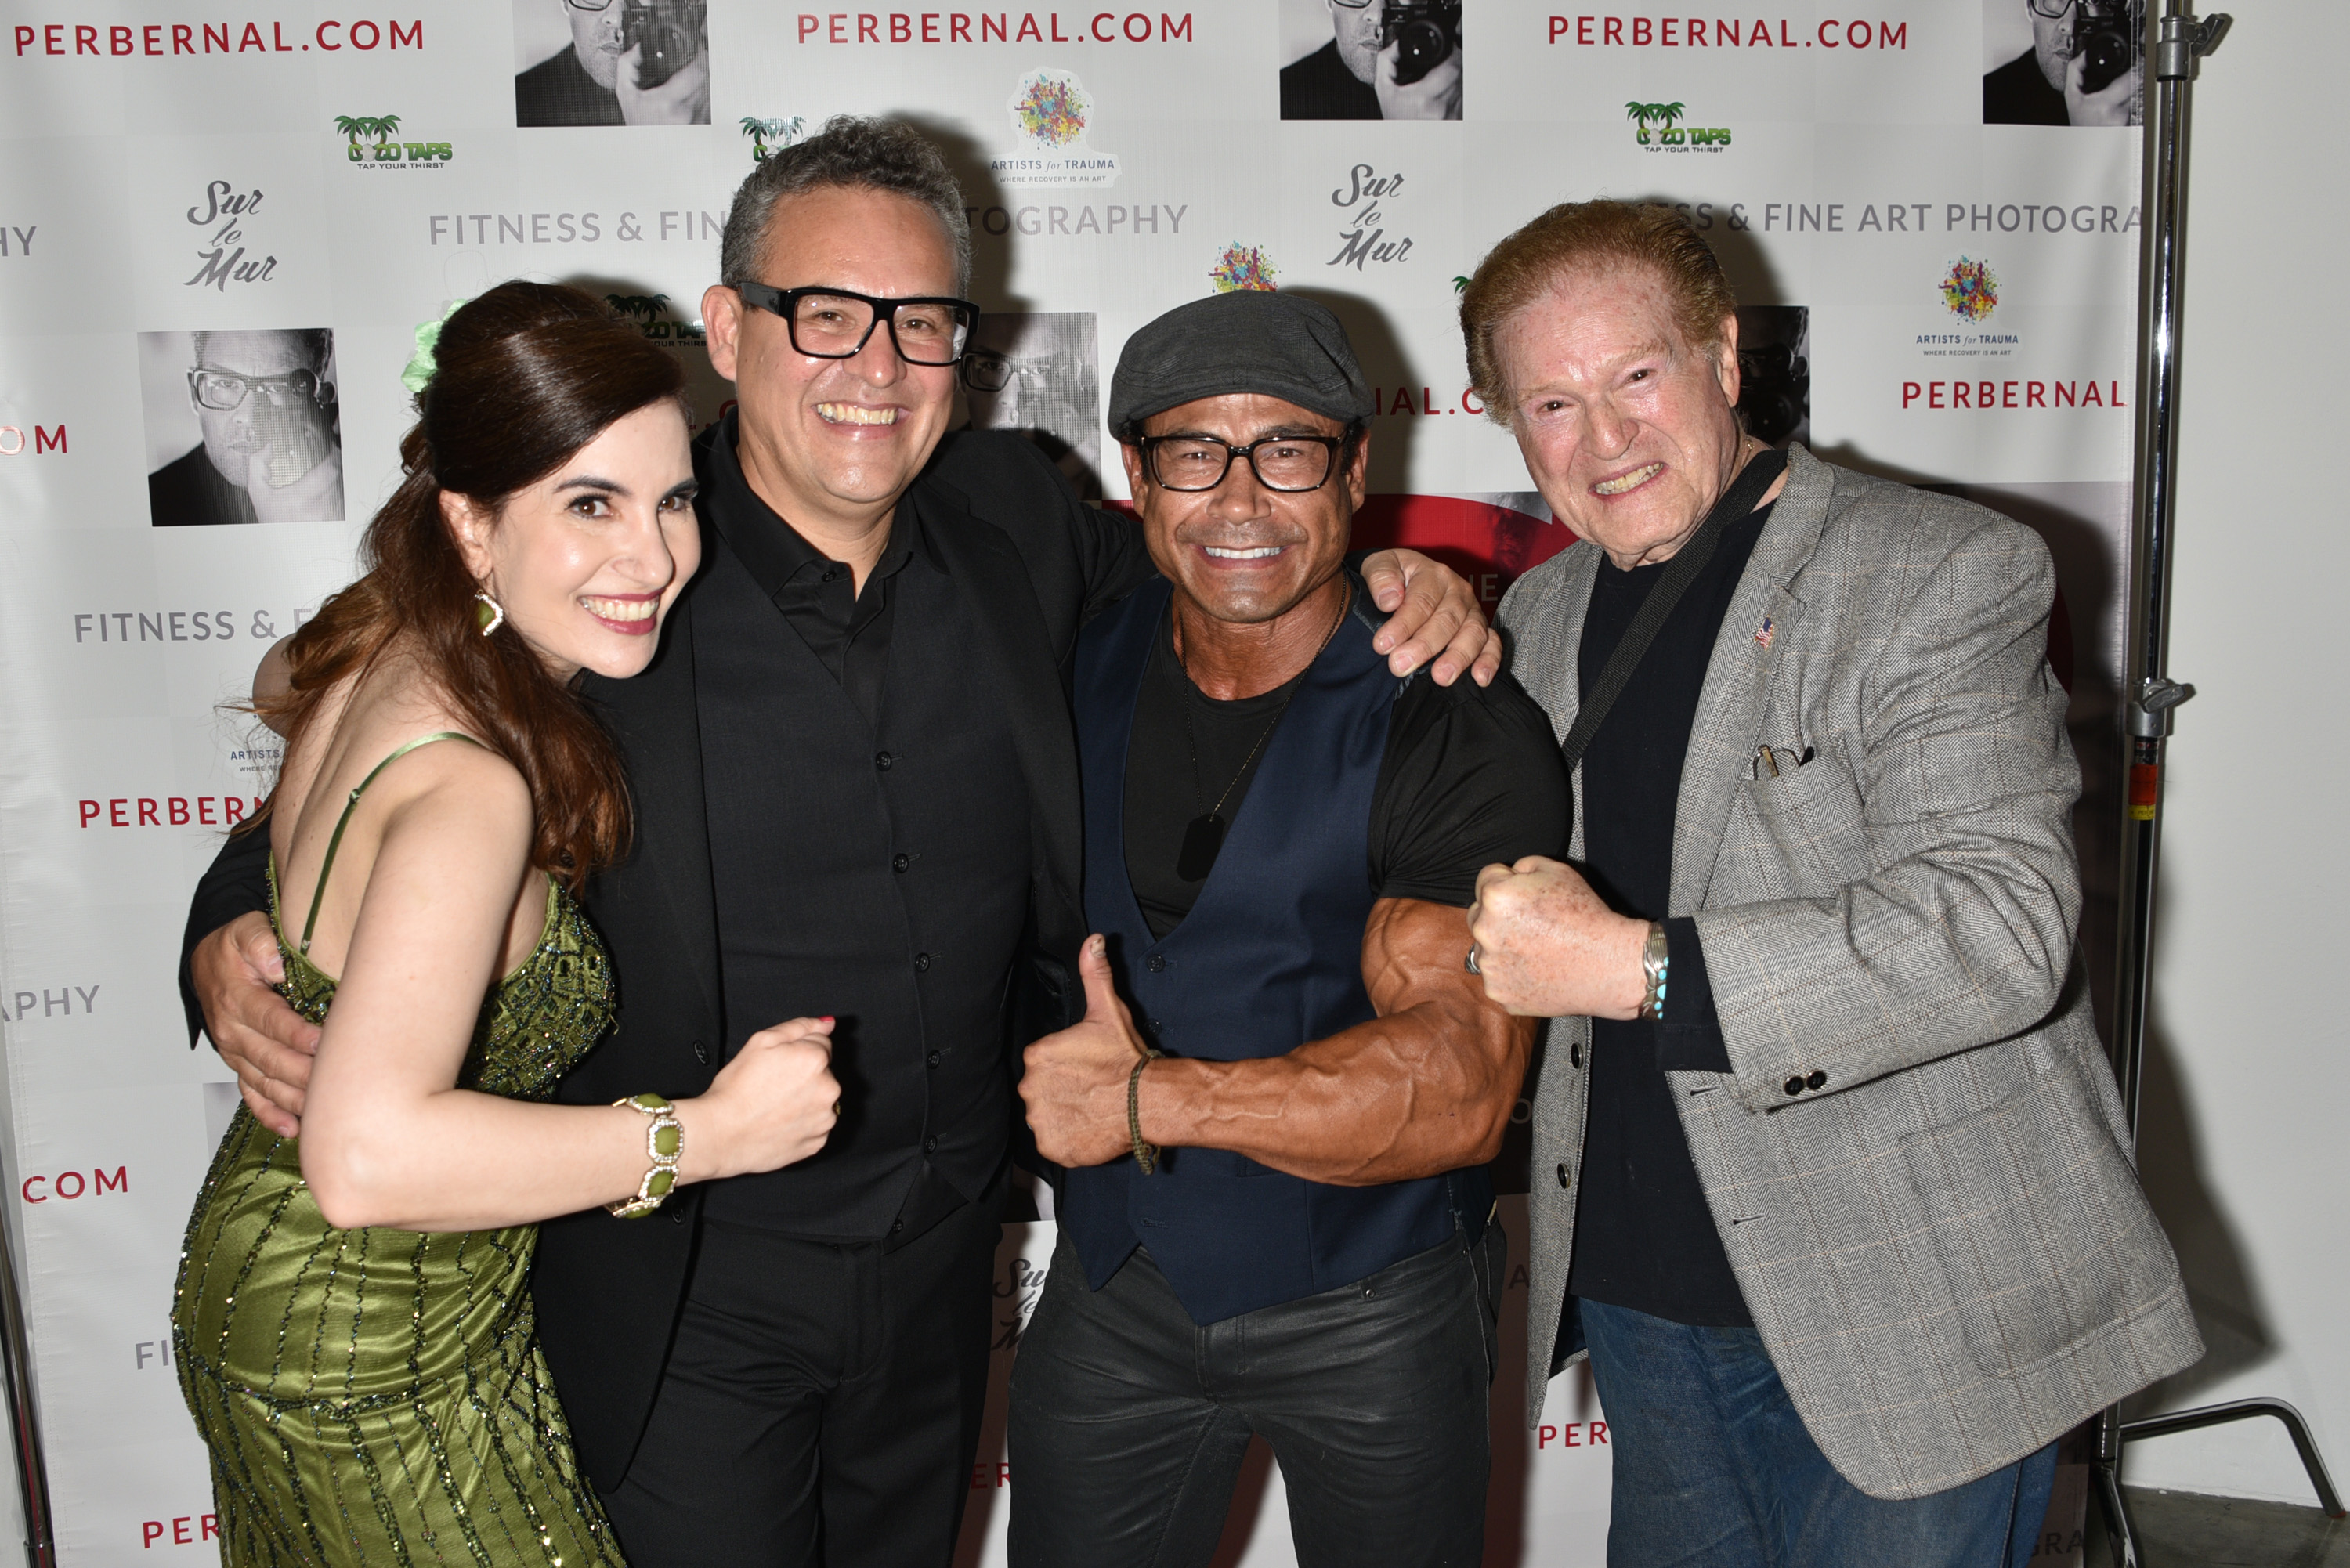 e28abde567 ... Actress And Also Hosted The Red Carpet Portion Of The Event, World  Renowned Celebrity Photographer Per Bernal, One Time Mr. Olympia Danny  Hester And ...